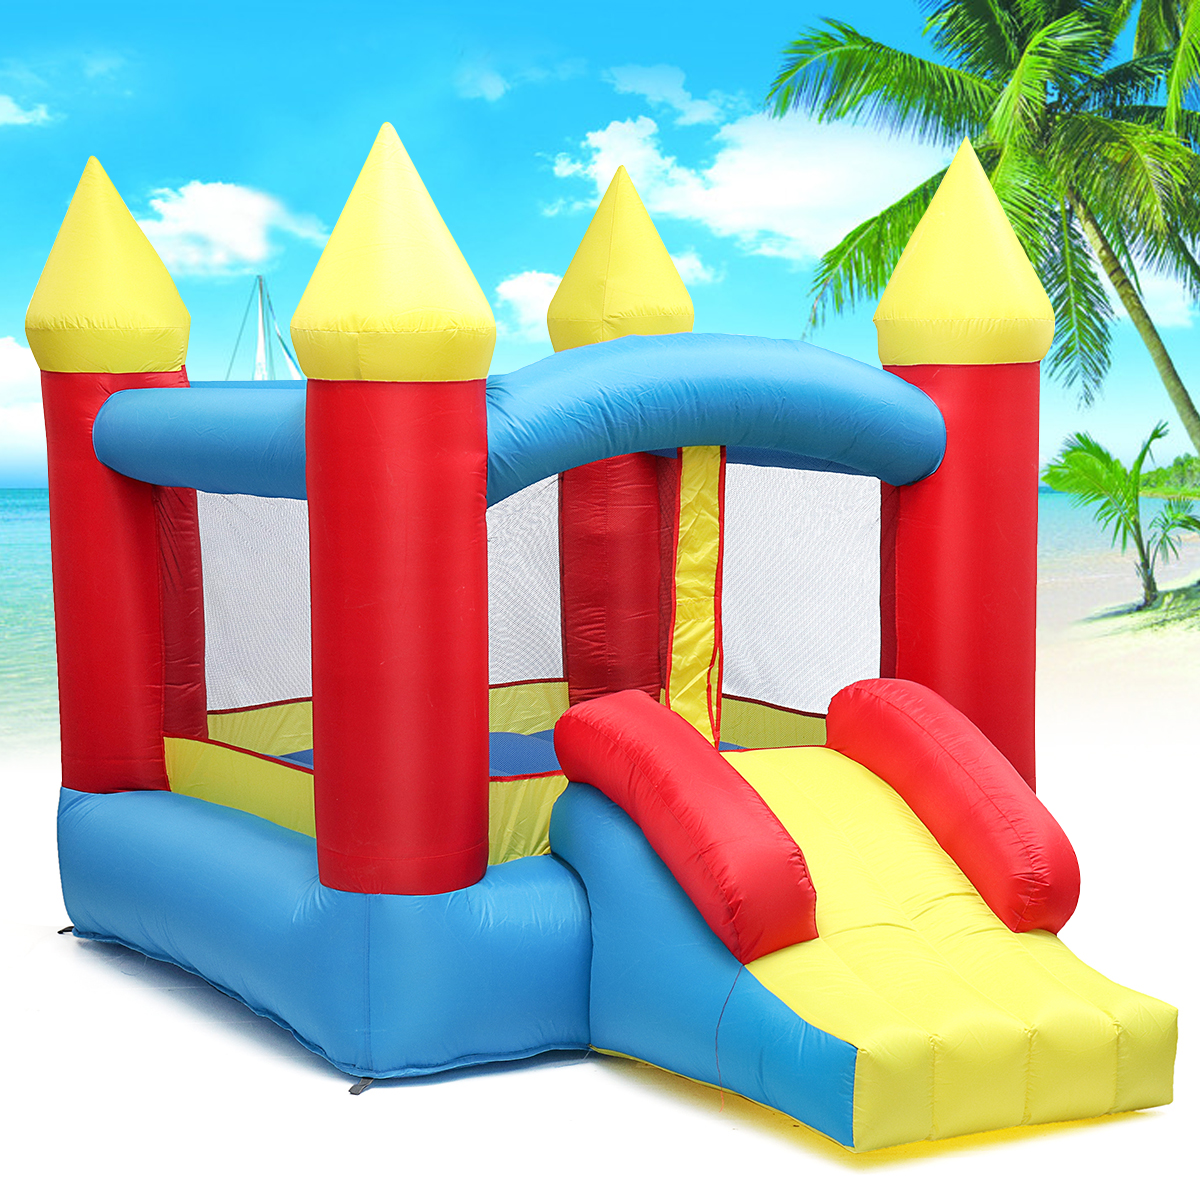 1Set Bouncy Castle Outdoor Indoor Universal  Trampoline Inflatable Castle Playing Games for Kids Gift1Set Bouncy Castle Outdoor Indoor Universal  Trampoline Inflatable Castle Playing Games for Kids Gift